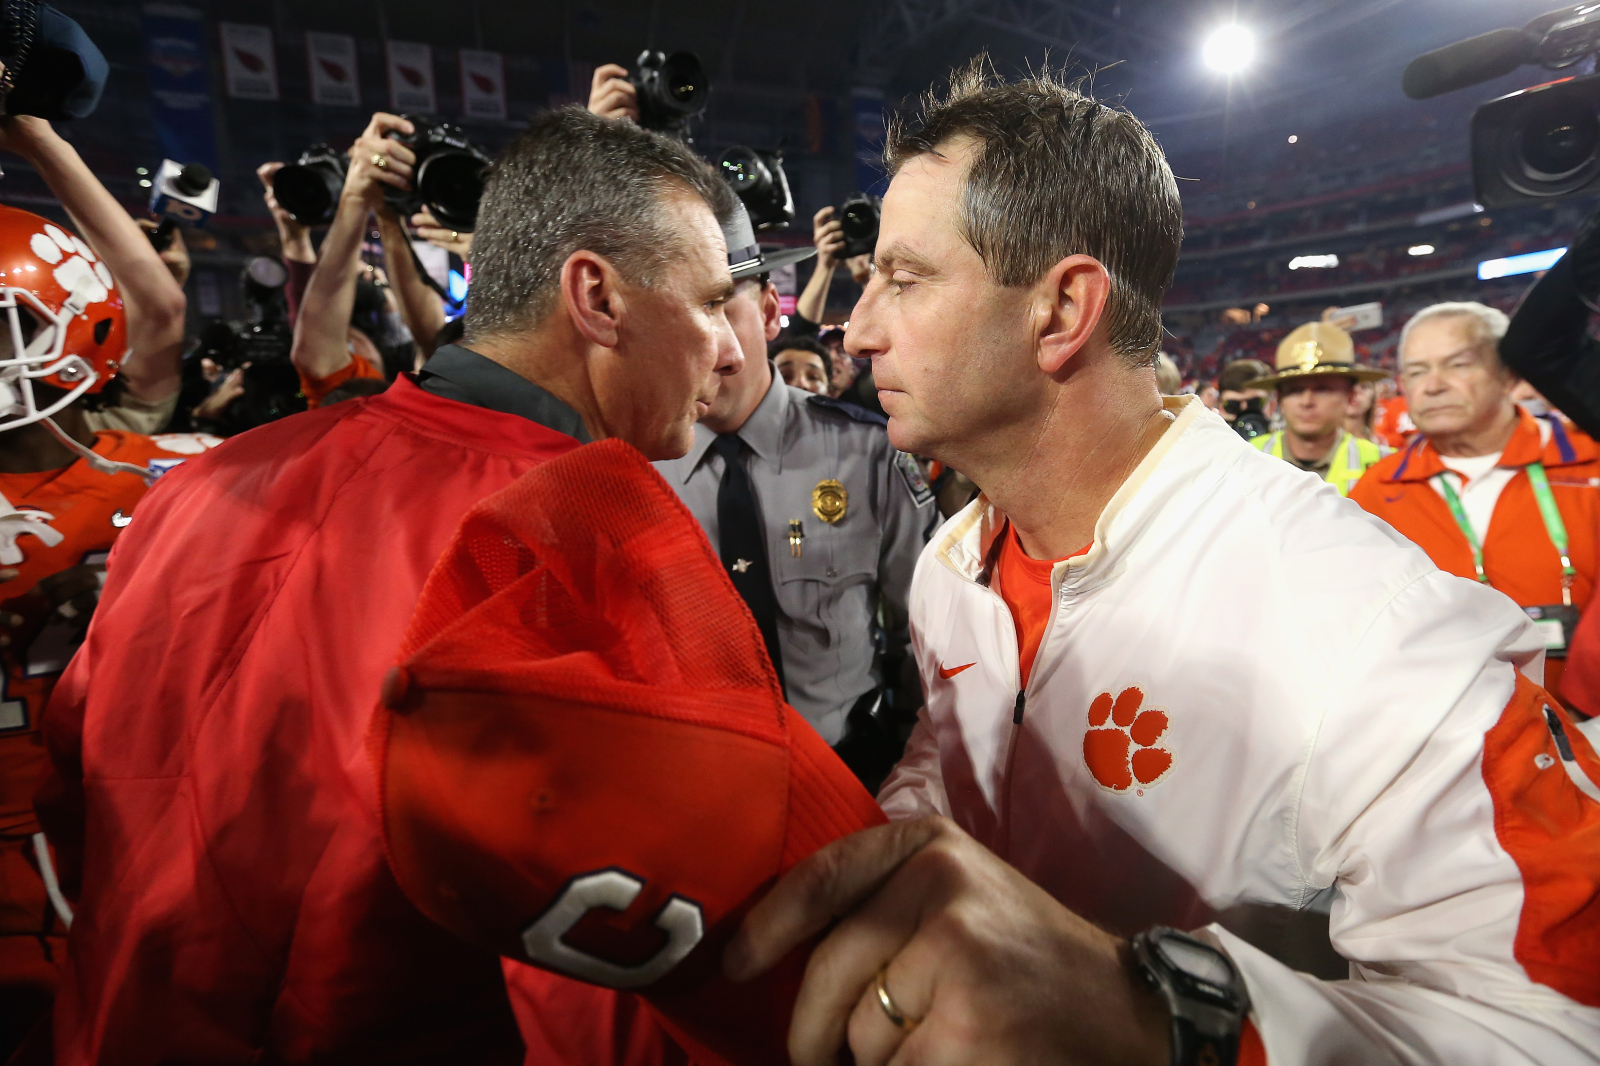 Dabo Swinney recently said he doesn't think Ohio State should make the College Football Playoff. Urban Meyer had something to say about that.